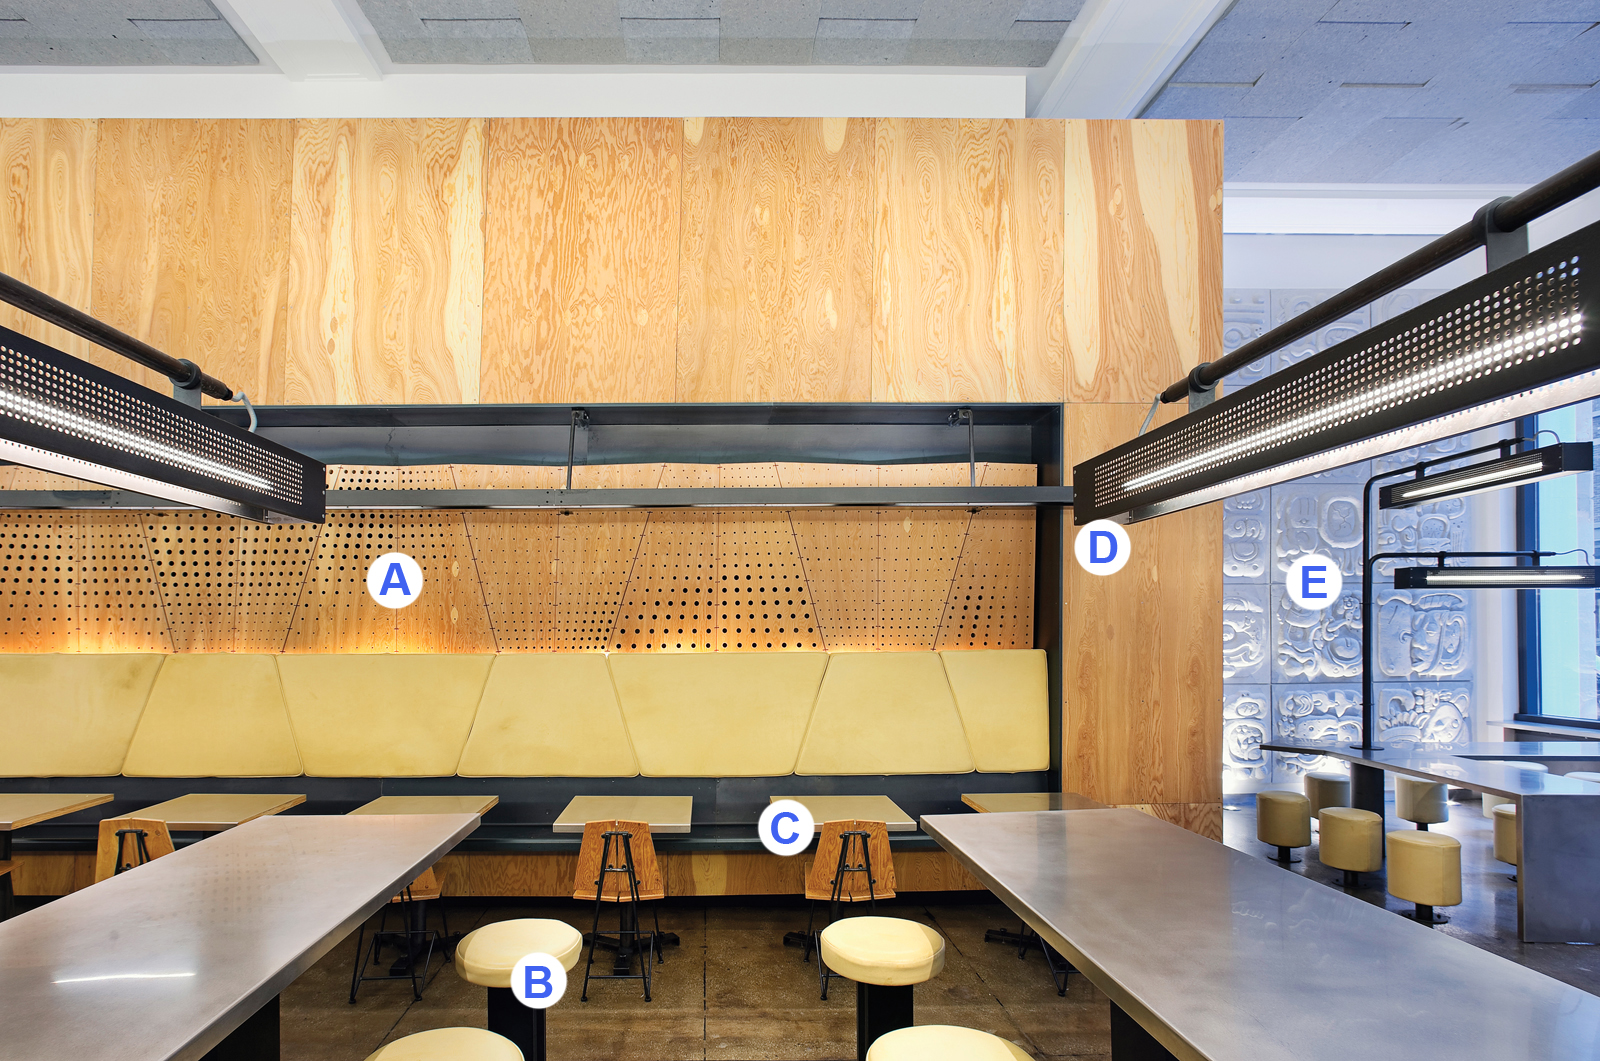 Chipotle Restaurant in New York by Architecture Outfit